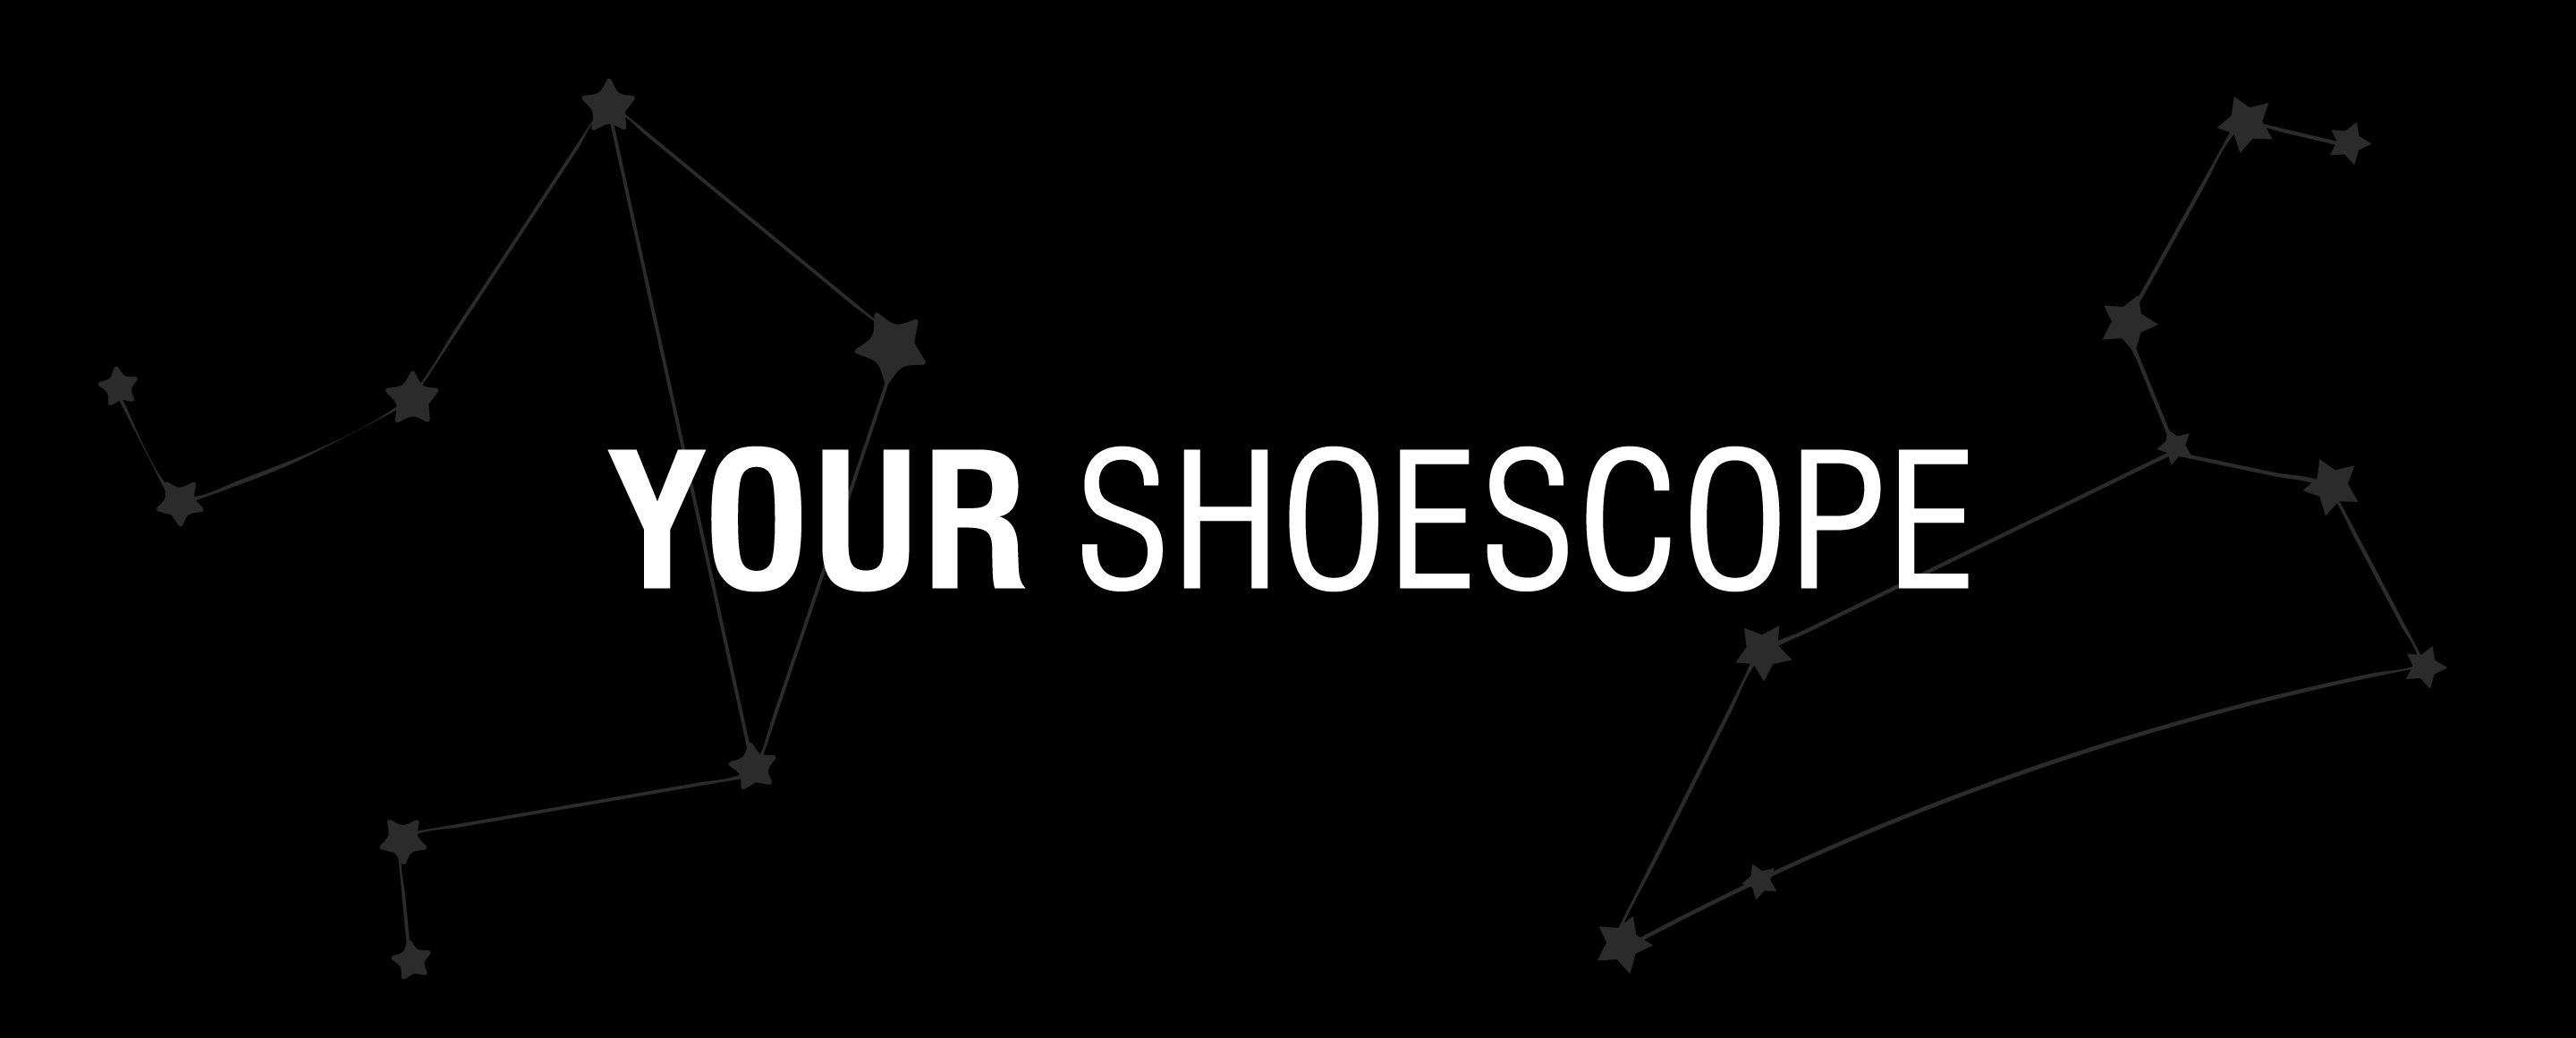 Your Shoescope